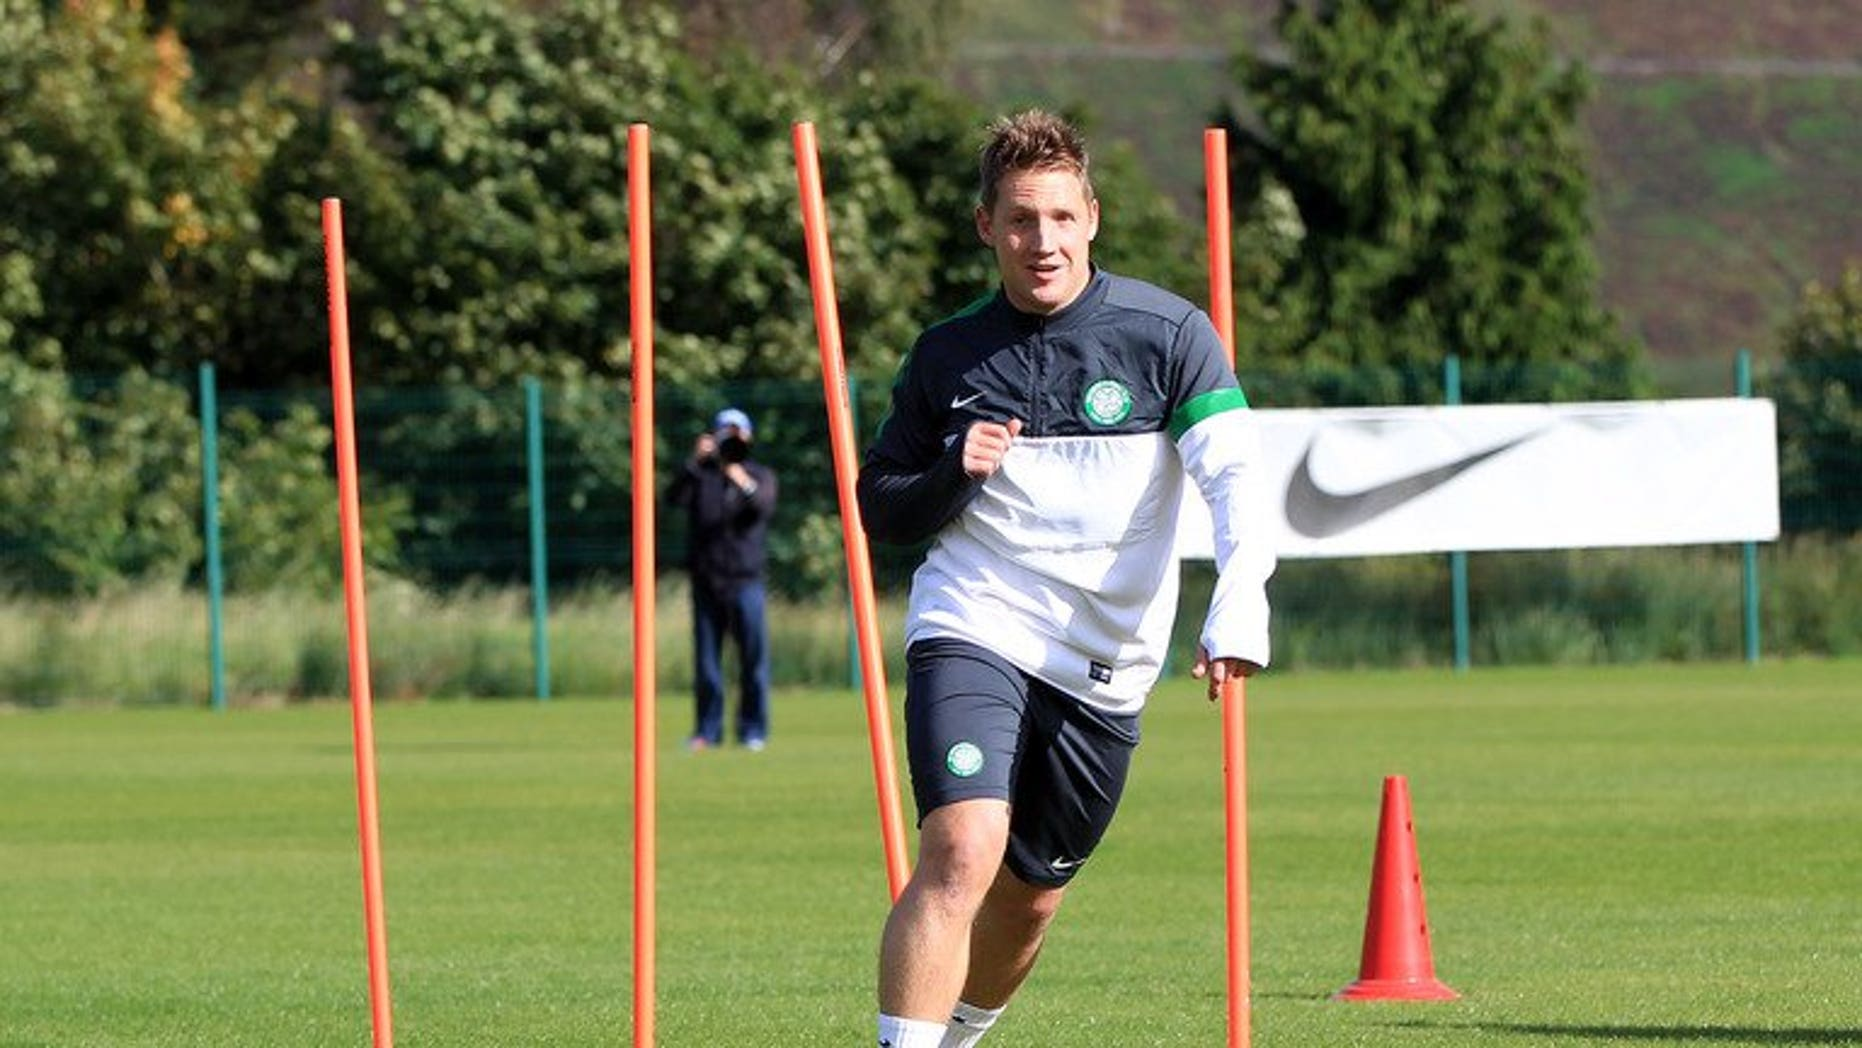 Celtic's Scottish midfielder Kris Commons takes part in a training session in Glascow on September 18, 2012. Celtic maintained their winning start to the new Scottish Premiership season with a 2-0 victory against 10-man Aberdeen on Saturday.